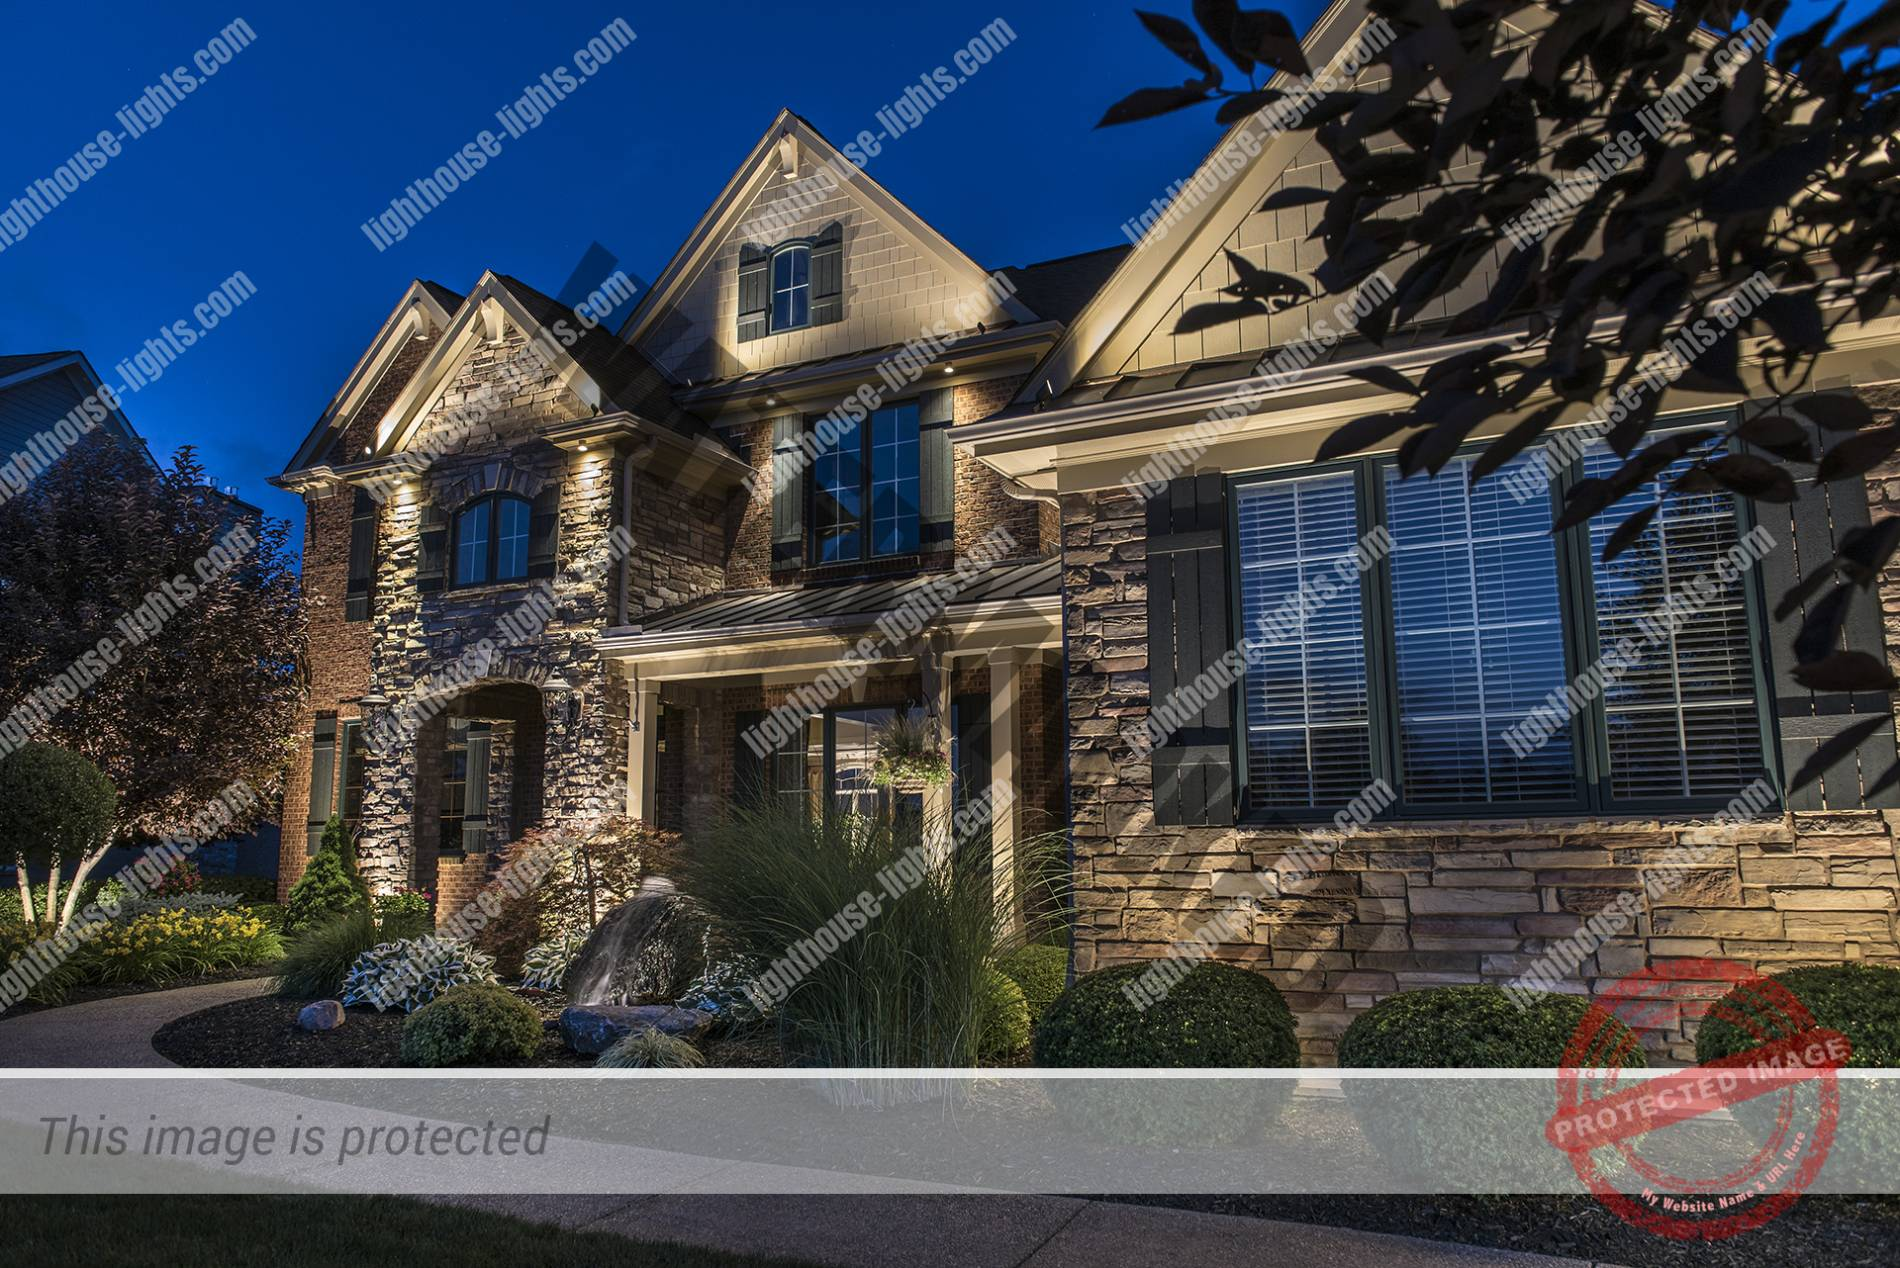 Gorgeous Stone and Brick Home - Lighthouse Landscape Lighting